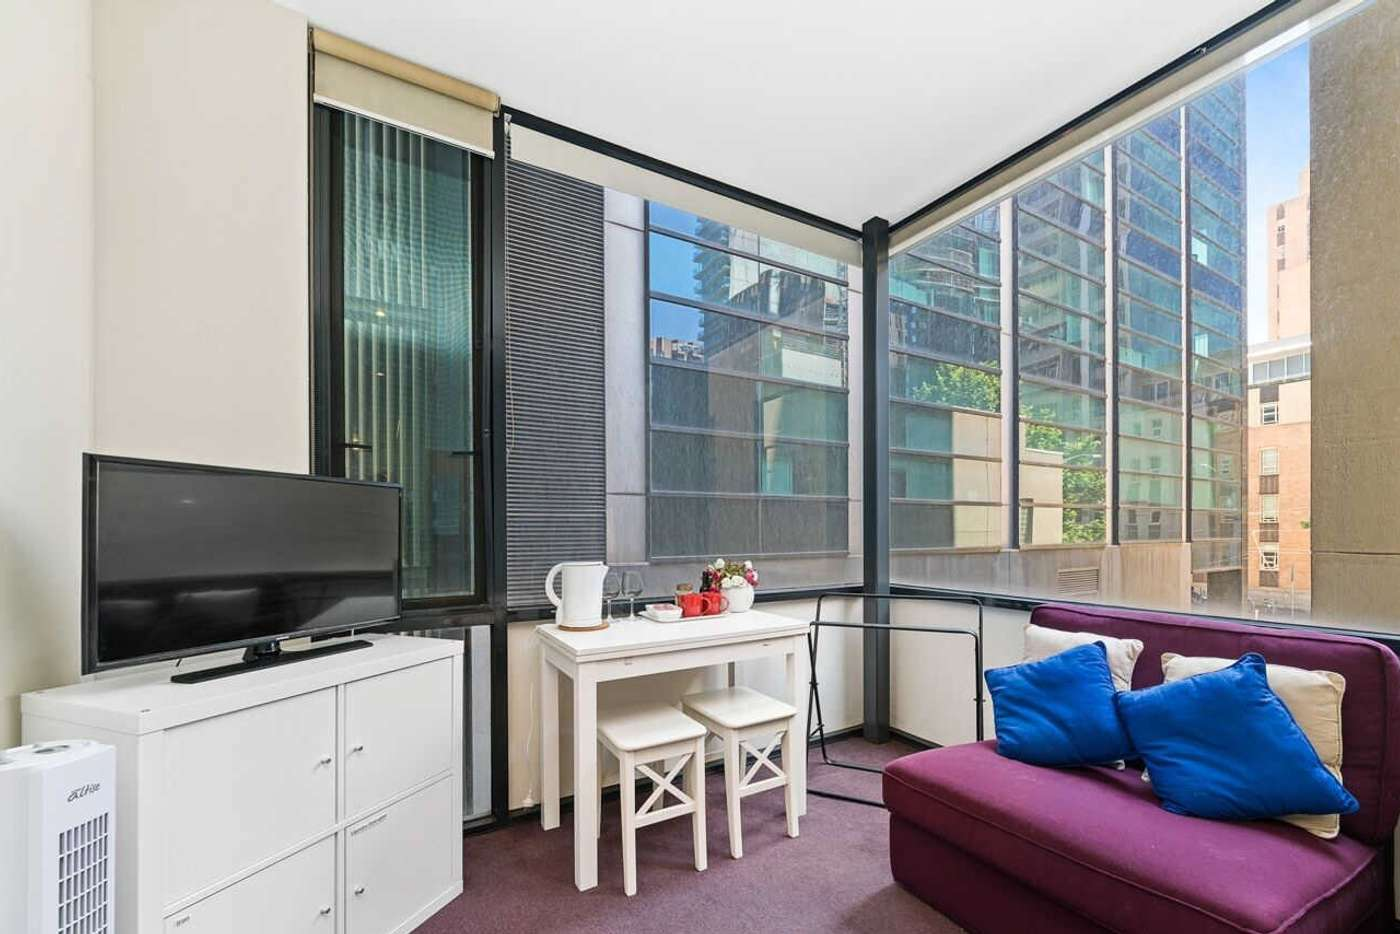 Main view of Homely studio listing, 204/68 Hayward Lane, Melbourne VIC 3000